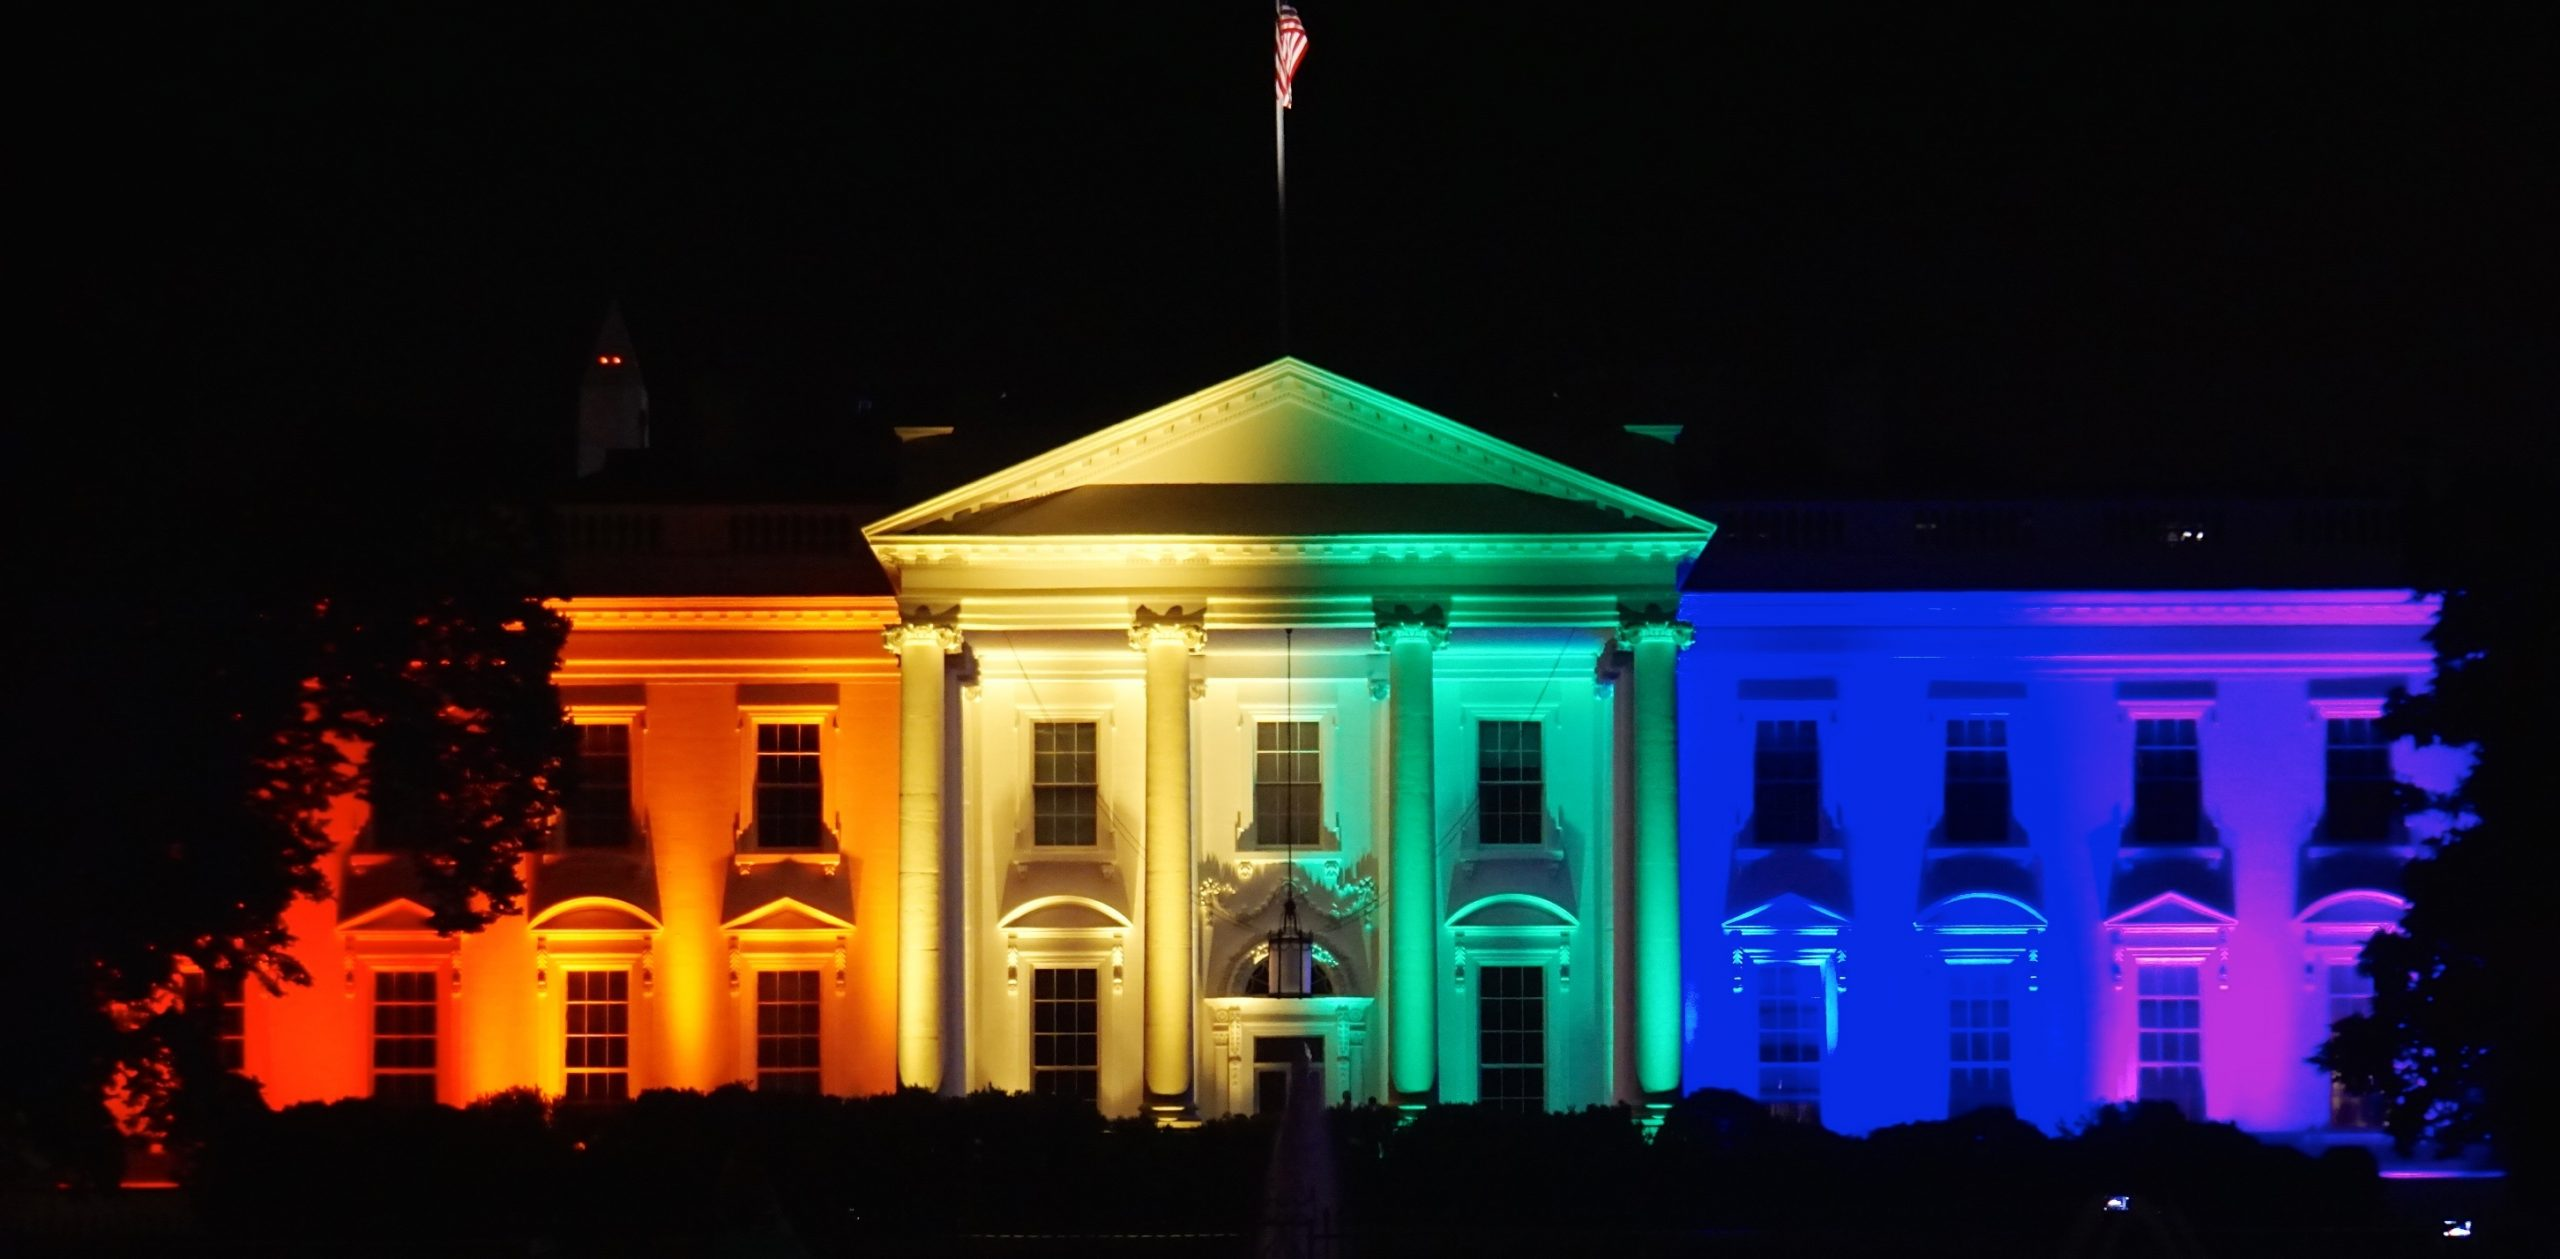 The White House after the ruling in the case of Obergefell v. Hodges on the night of June 26, 2015.